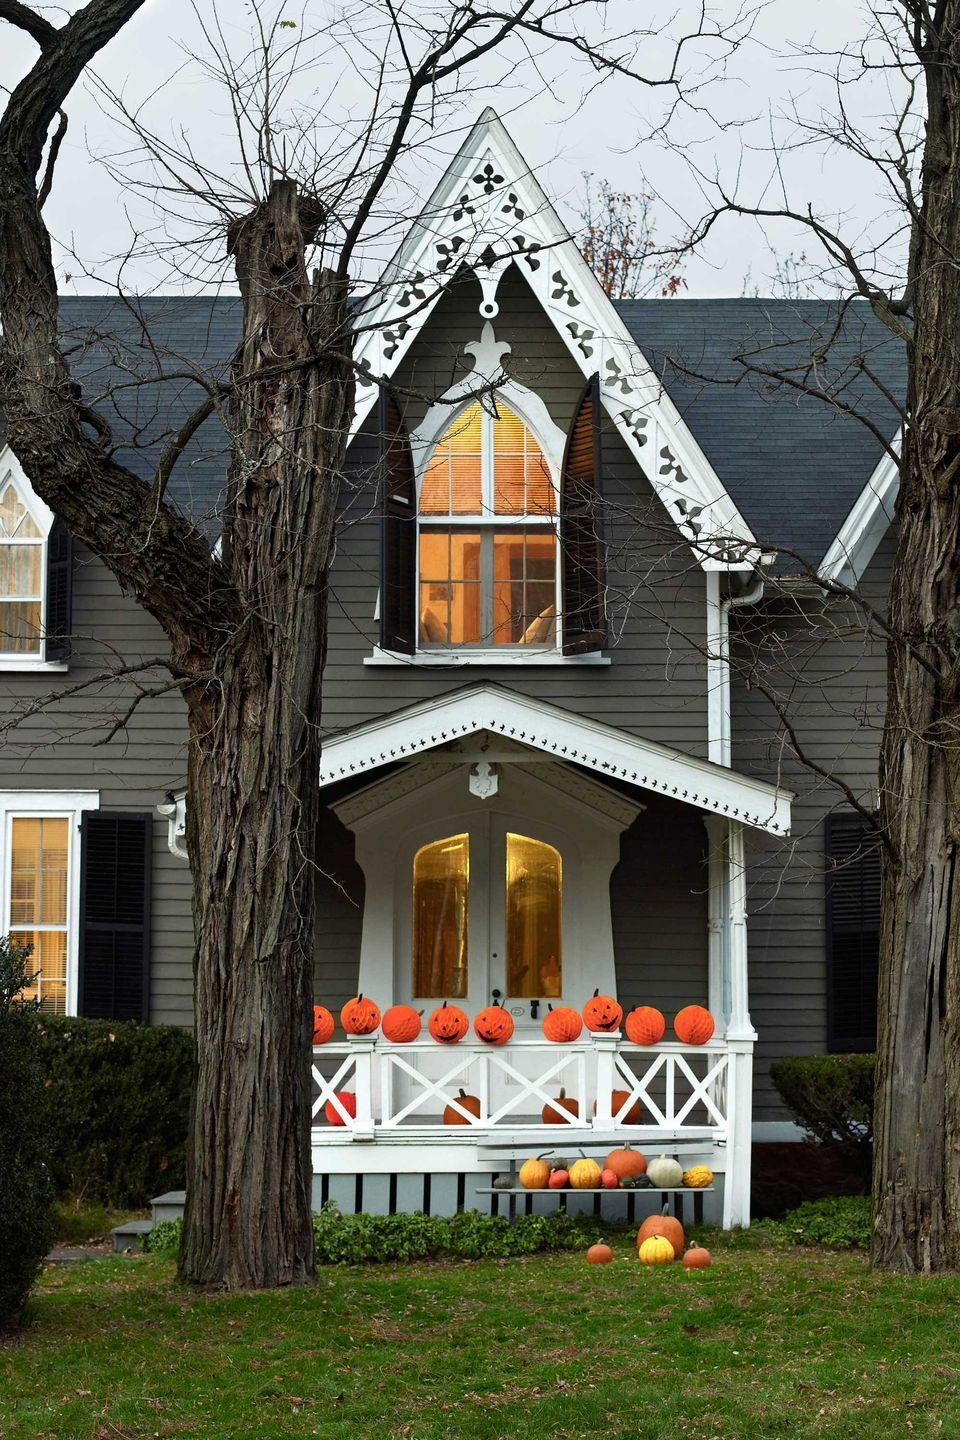 <p>Turn orange tissue-paper balls into proper Halloween pumpkins that can line your front porch. Simply cut facial features and stems from construction paper and apply to the balls with glue dots. </p>